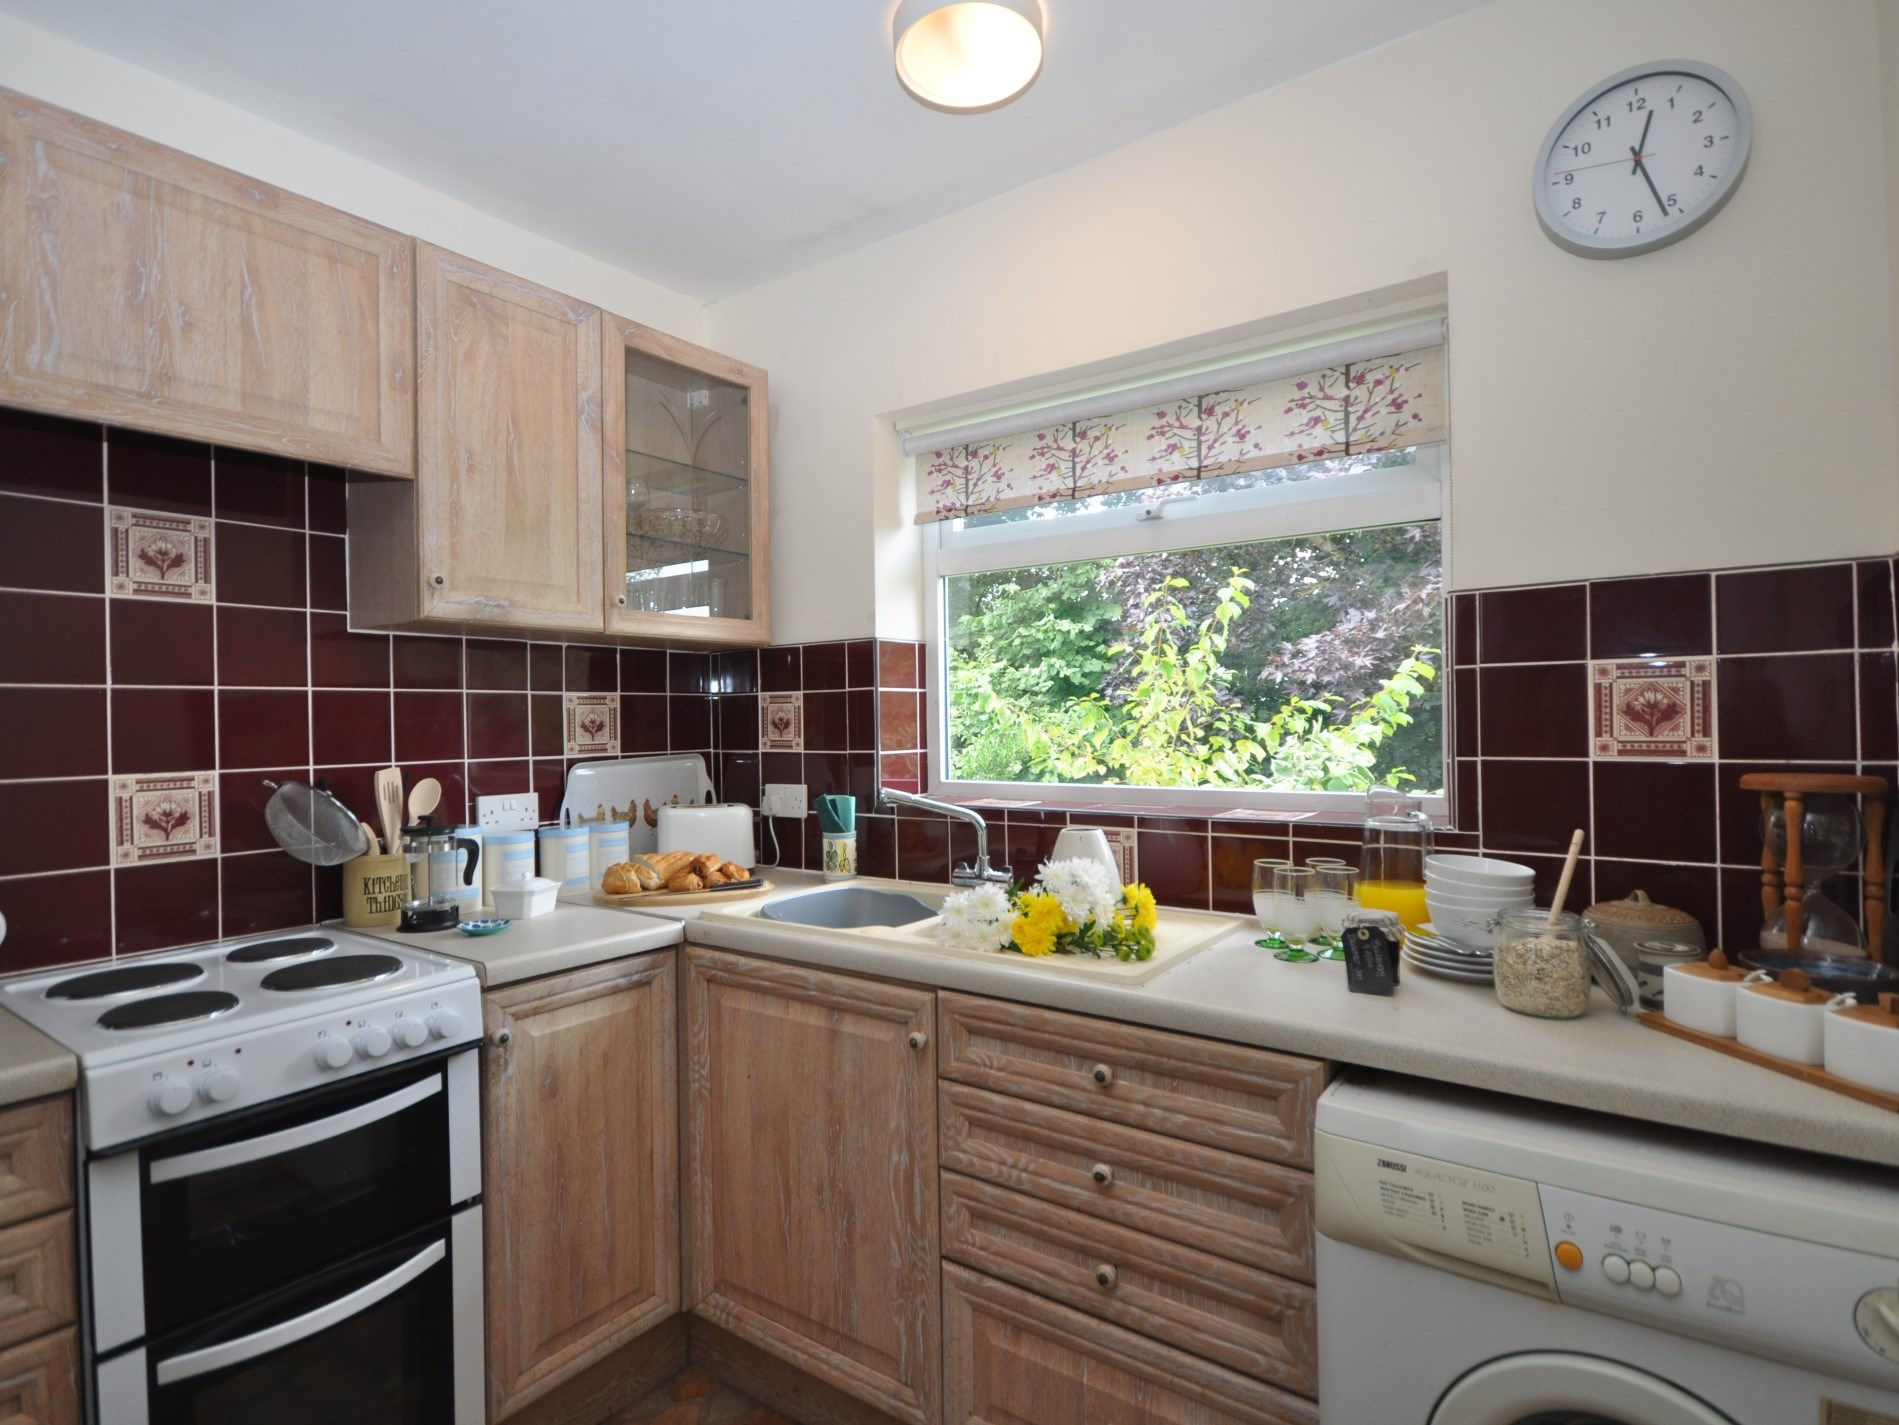 Enjoy preparing a simple supper in this well-equipped kitchen